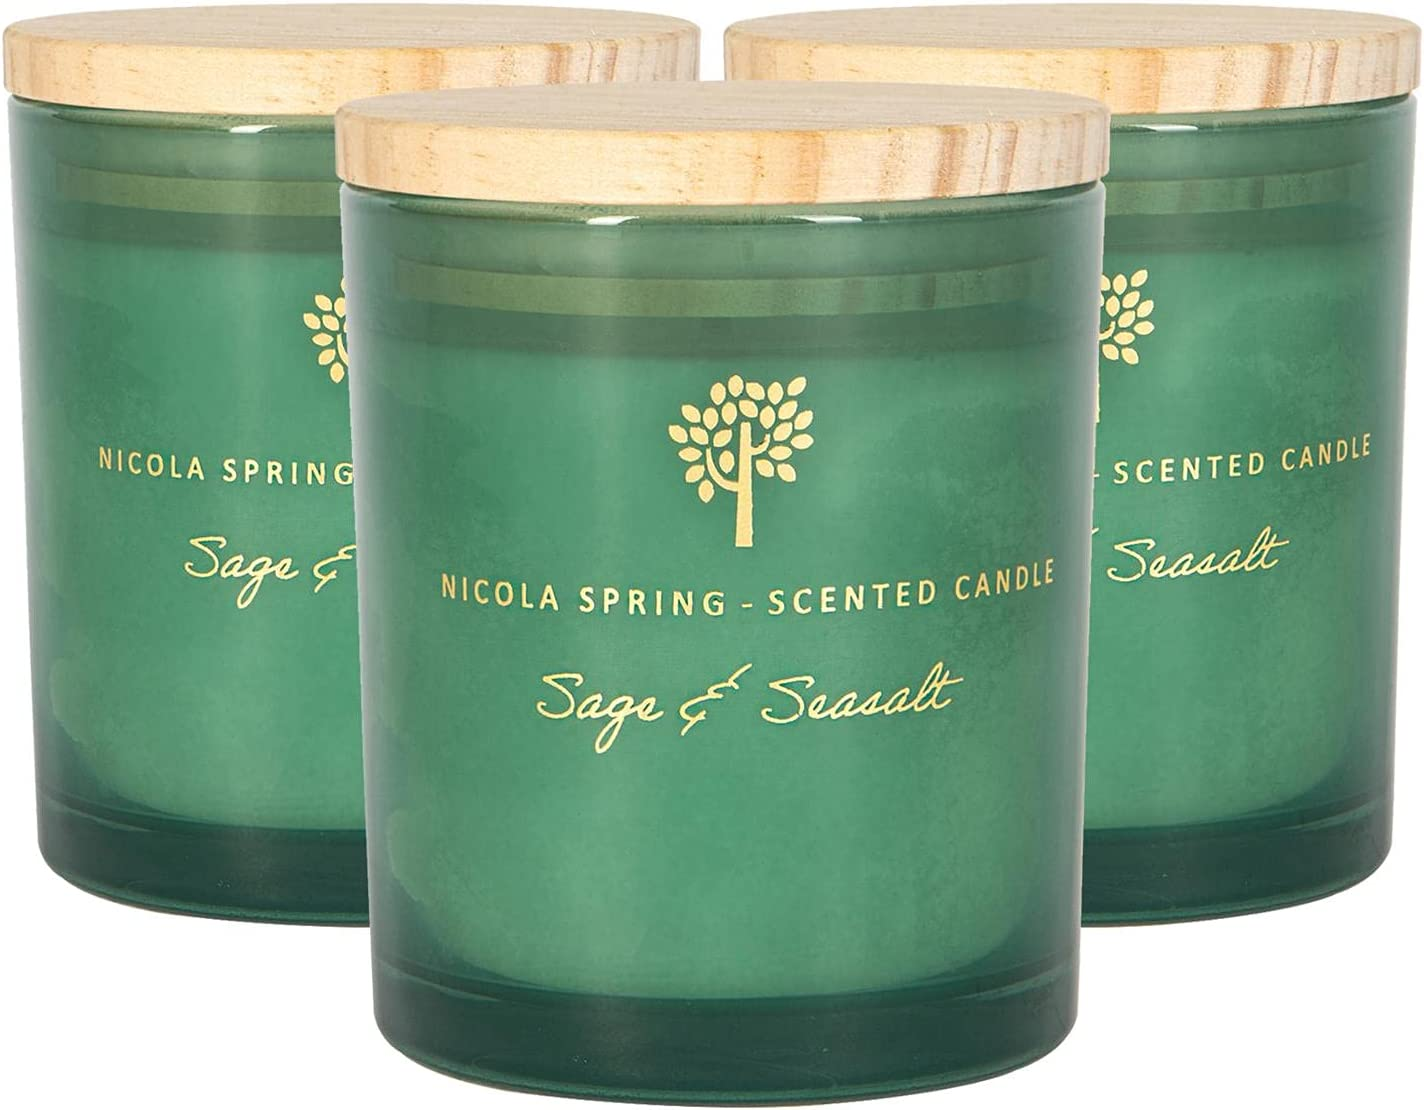 Nicola Spring Soy Wax Scented Aromatherapy Complete Free Shipping Glass - Long Beach Mall Candles Gift